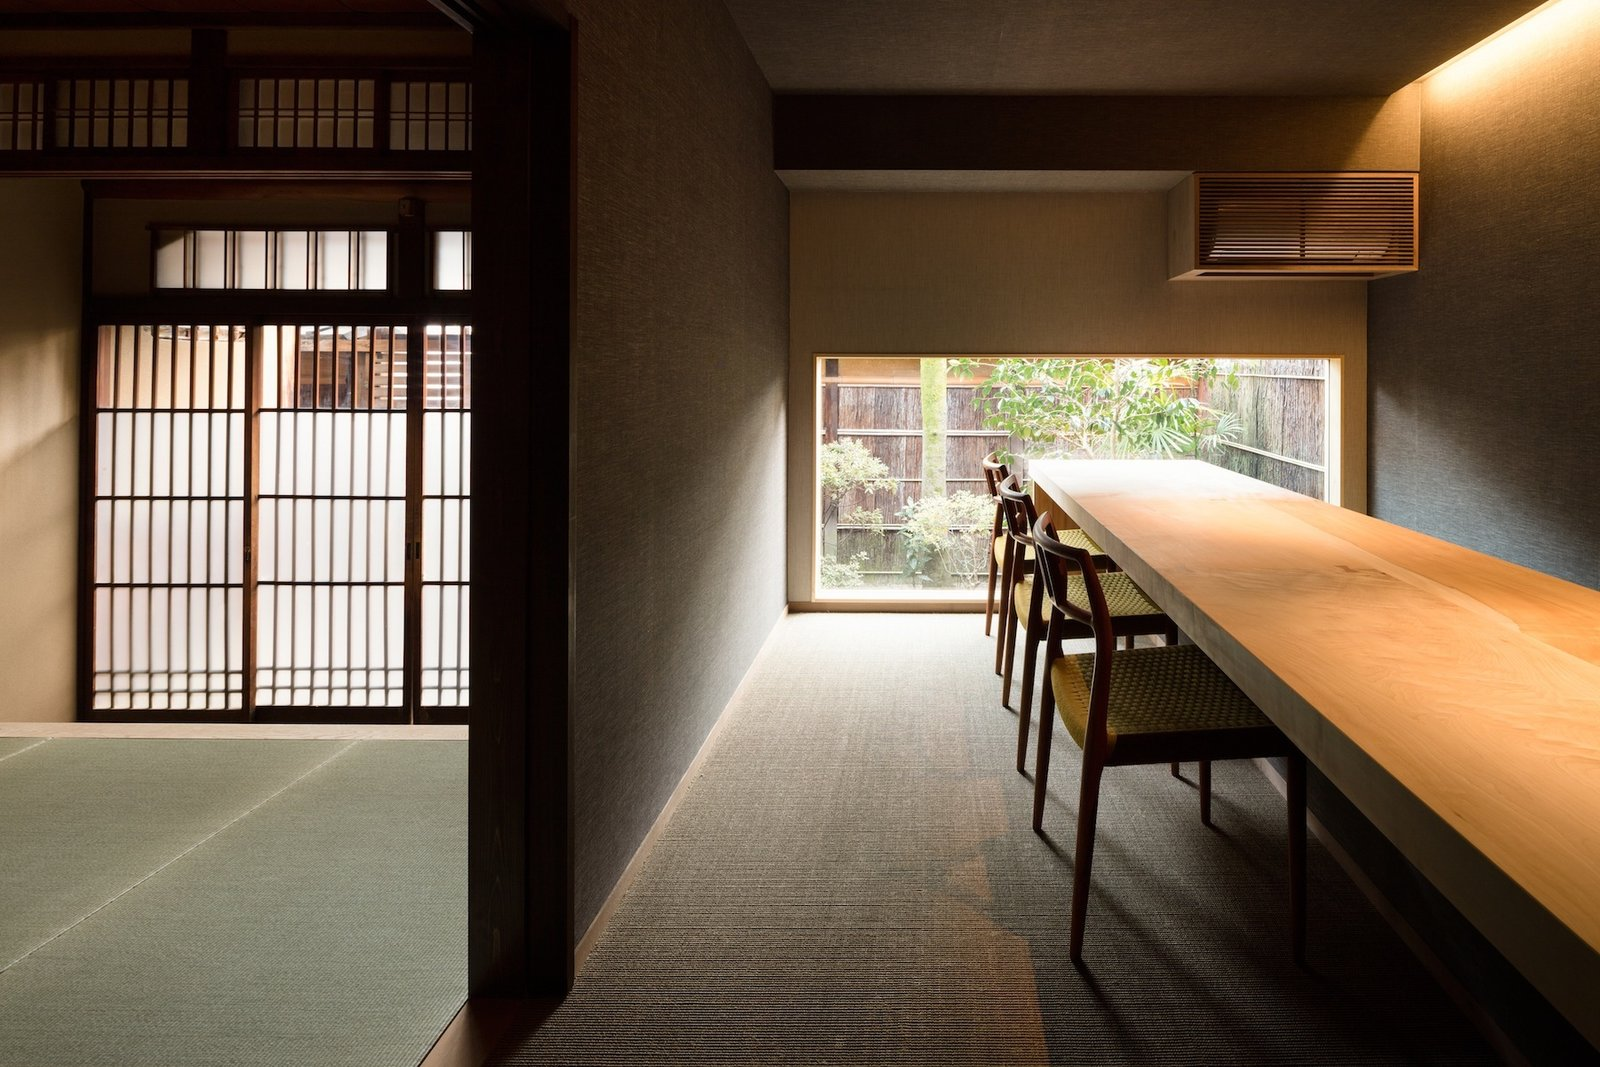 Tagged: Dining Room, Table, Chair, Recessed Lighting, and Carpet Floor.  Photo 10 of 13 in A Minimalist Townhouse Provides Serene Accommodations in Historic Kyoto